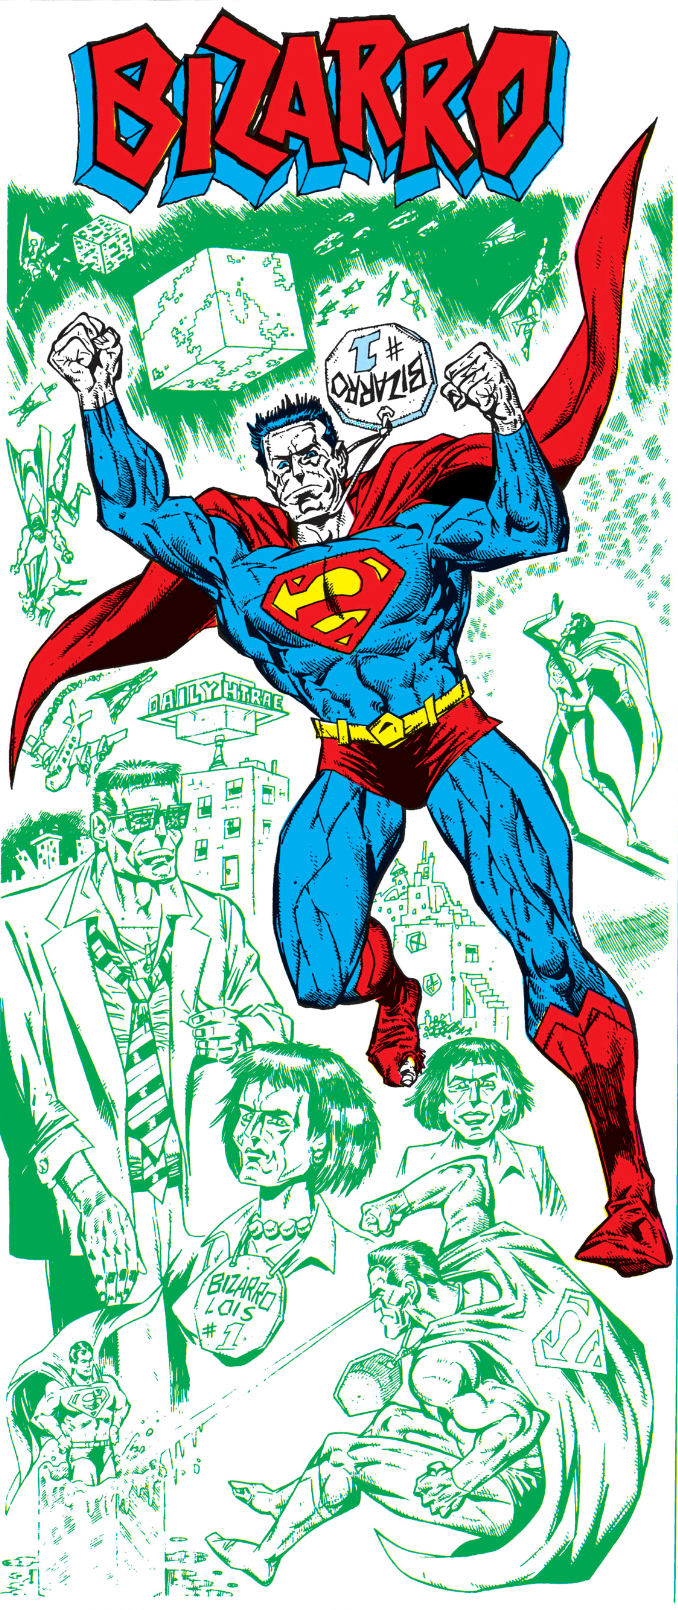 Bizarro (Earth-One)